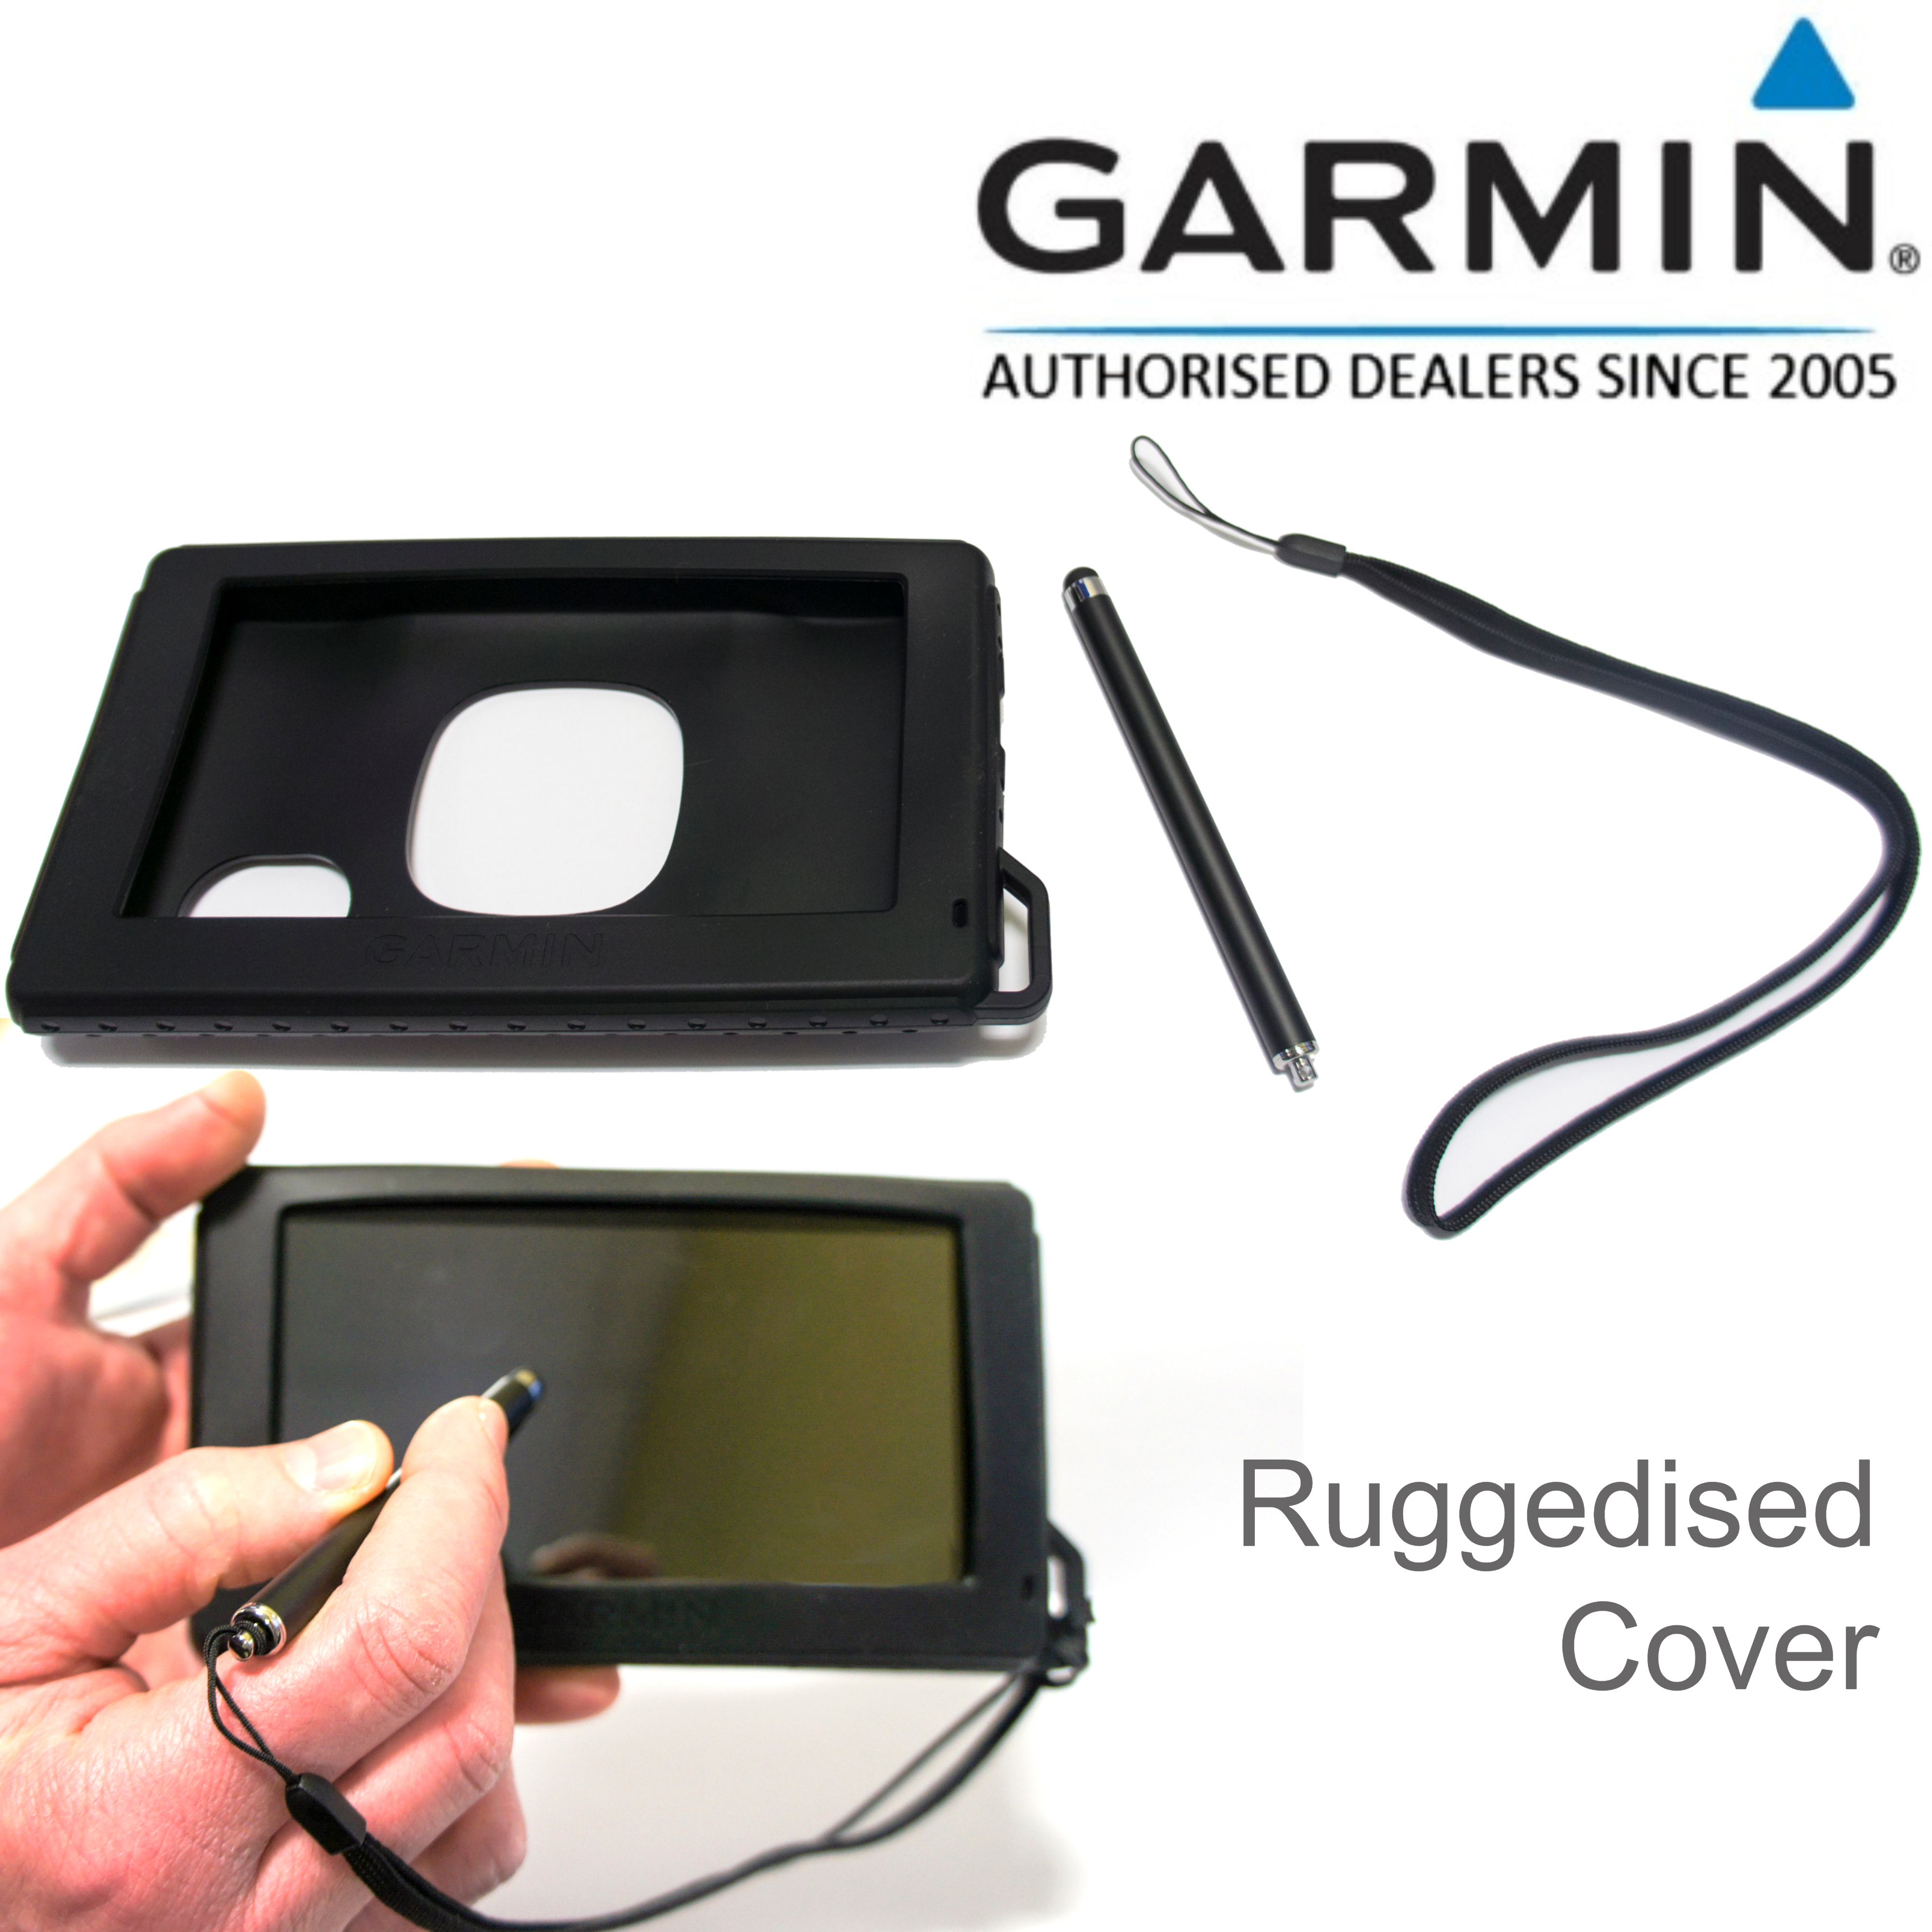 garmin 670 manual on